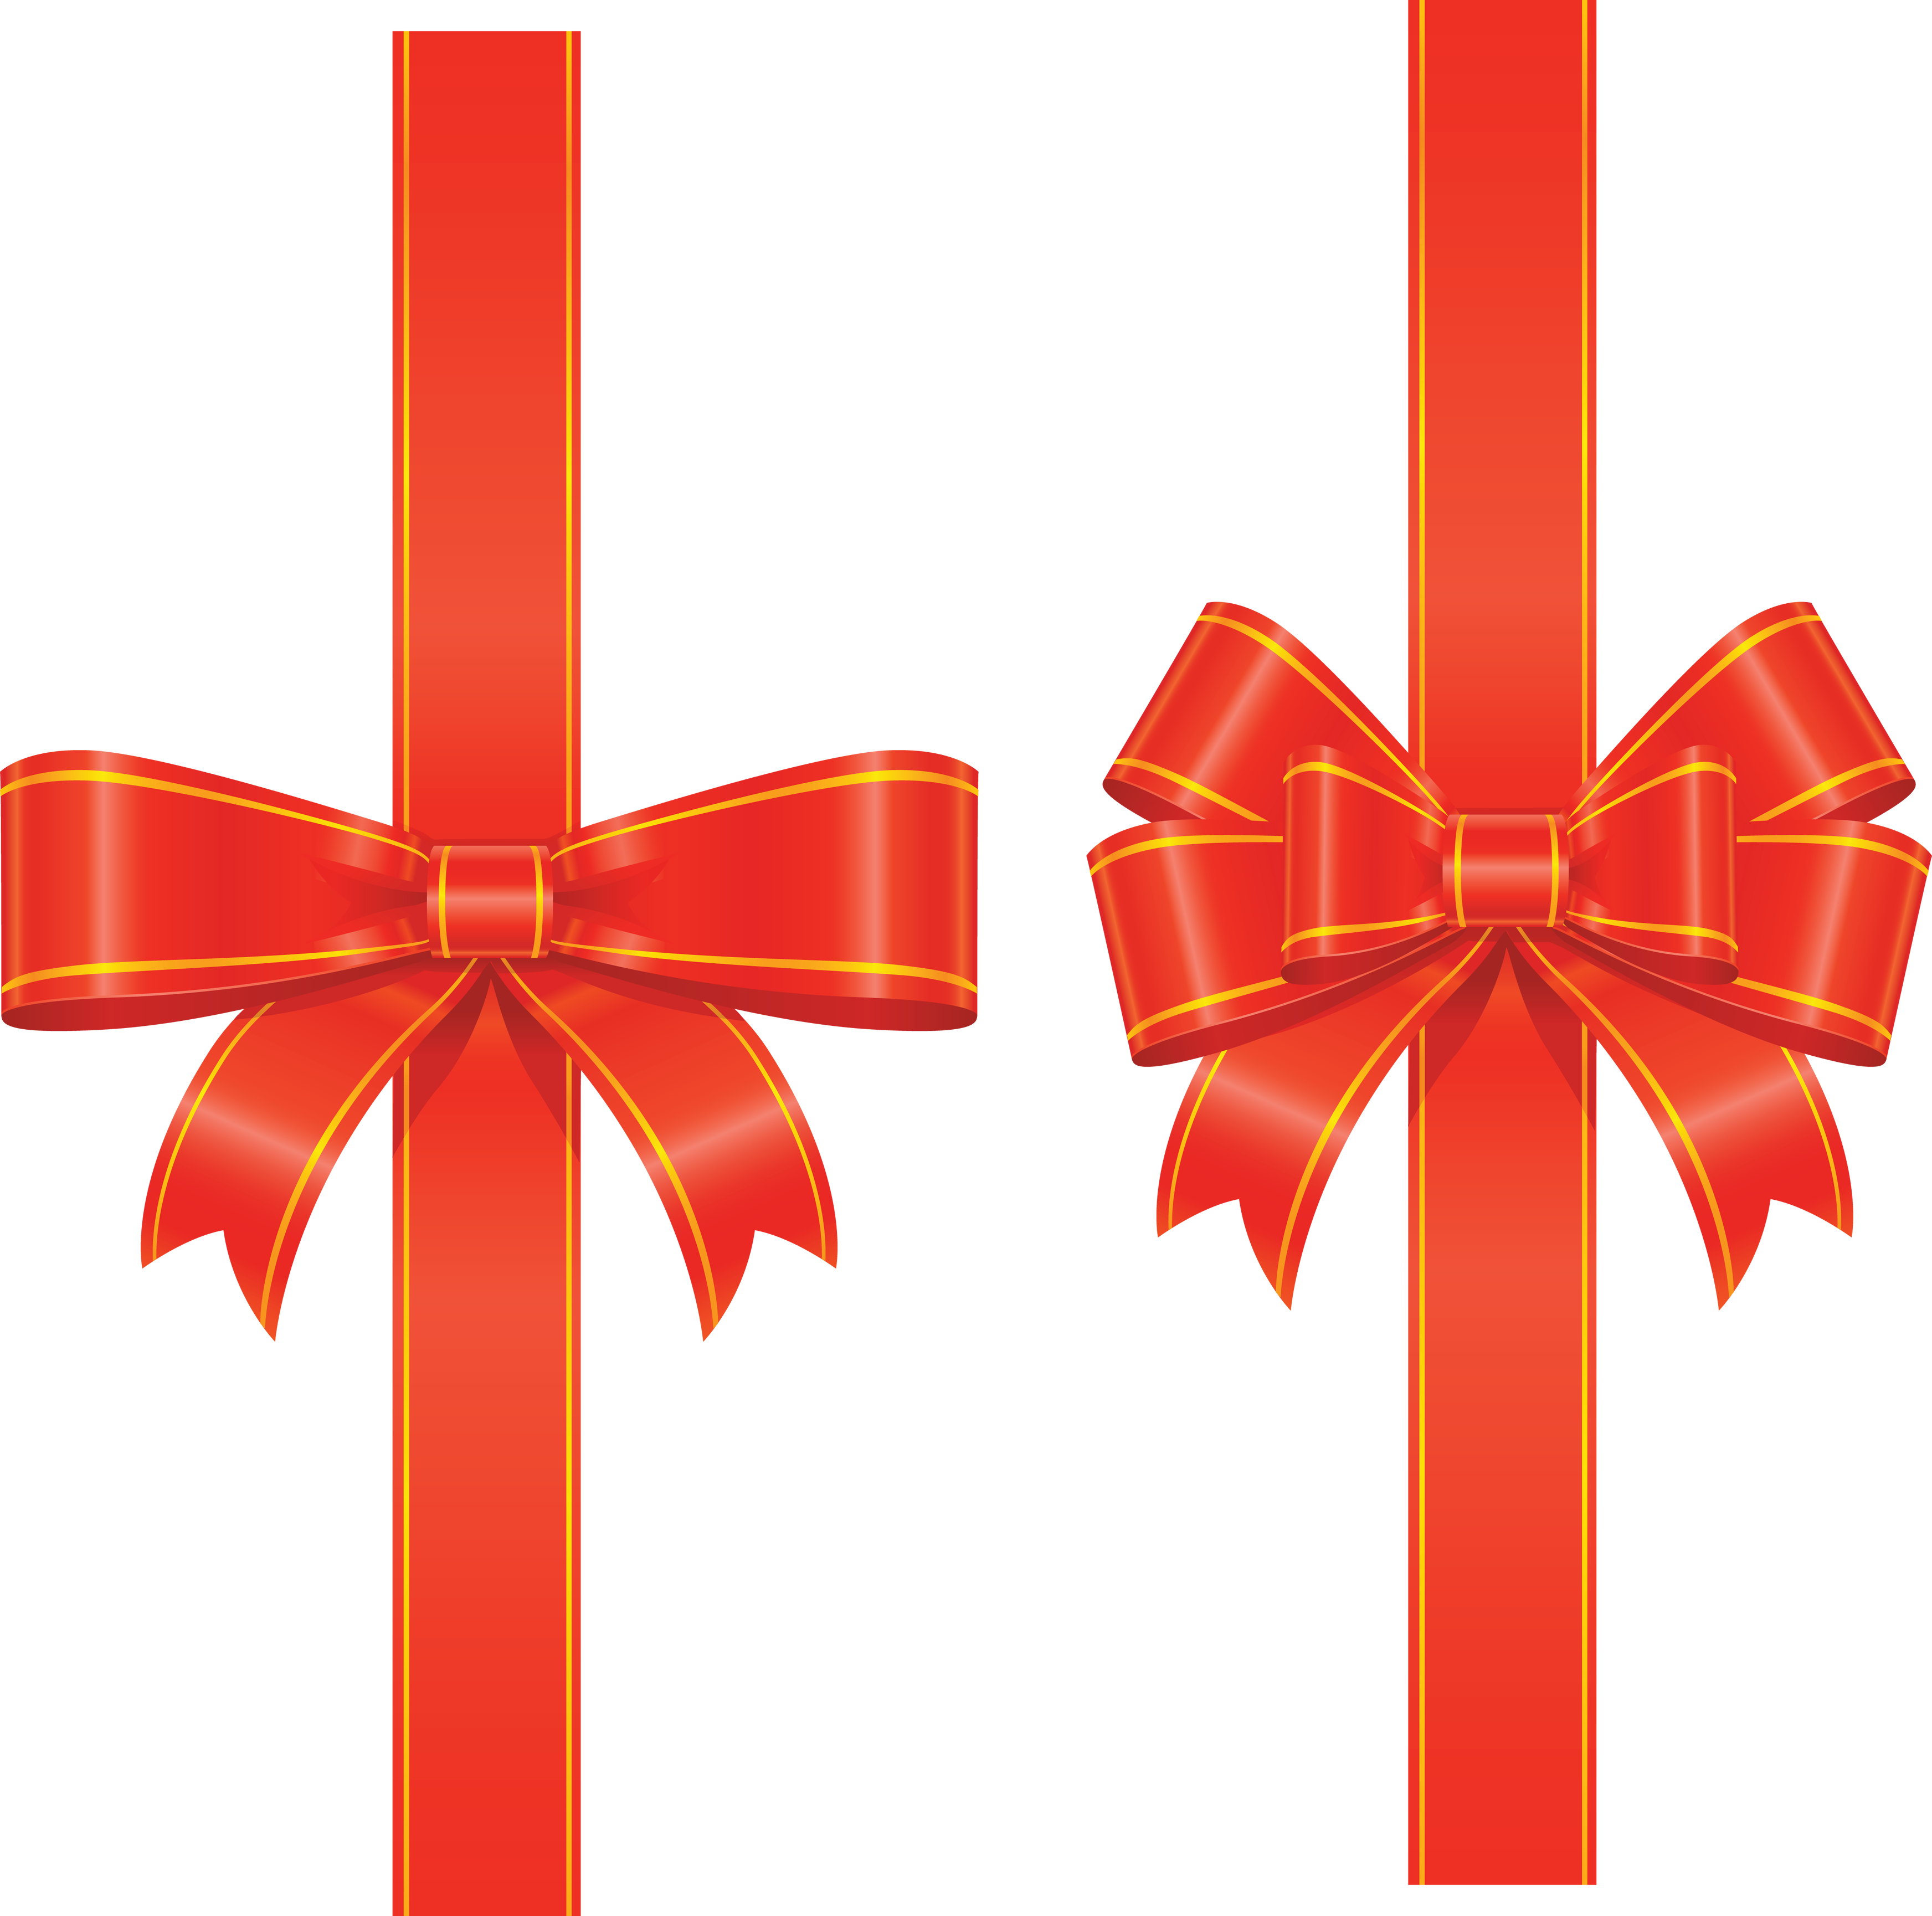 Now you can download Gift Transparent PNG Image